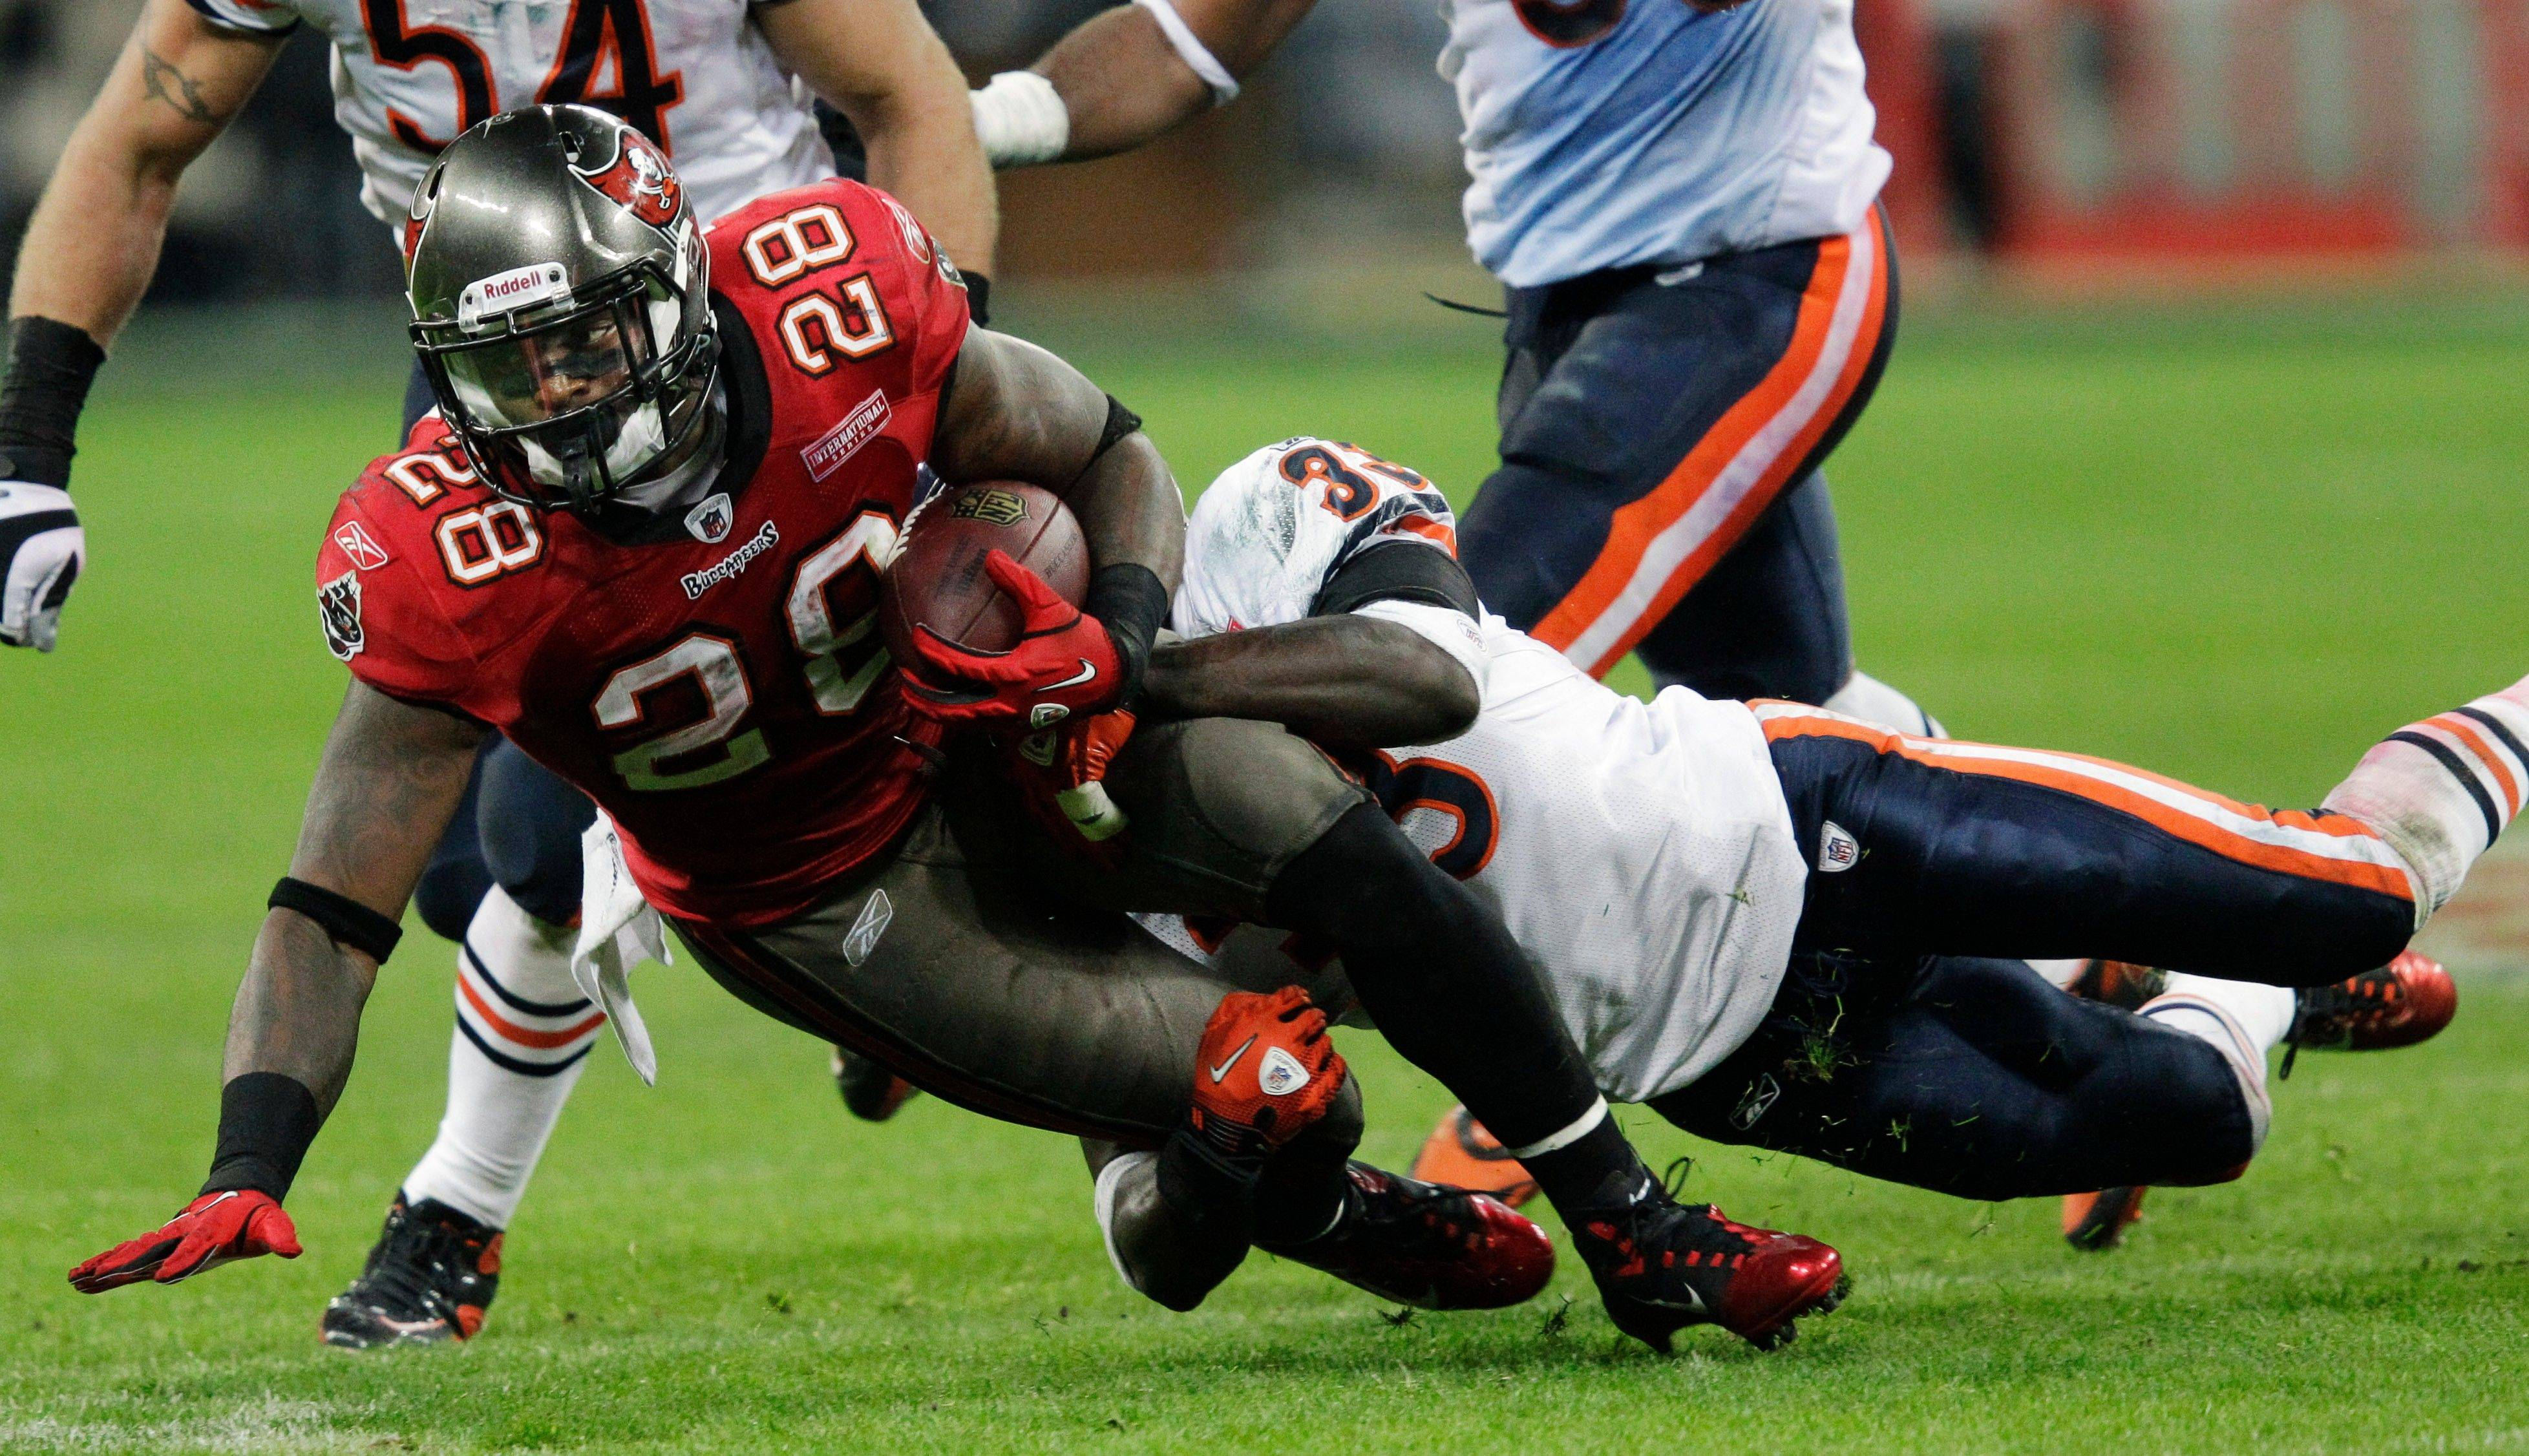 Tampa Bay Buccaneers running back Kregg Lumpkin is taken down by Chicago Bears cornerback Charles Tillman during the second half.